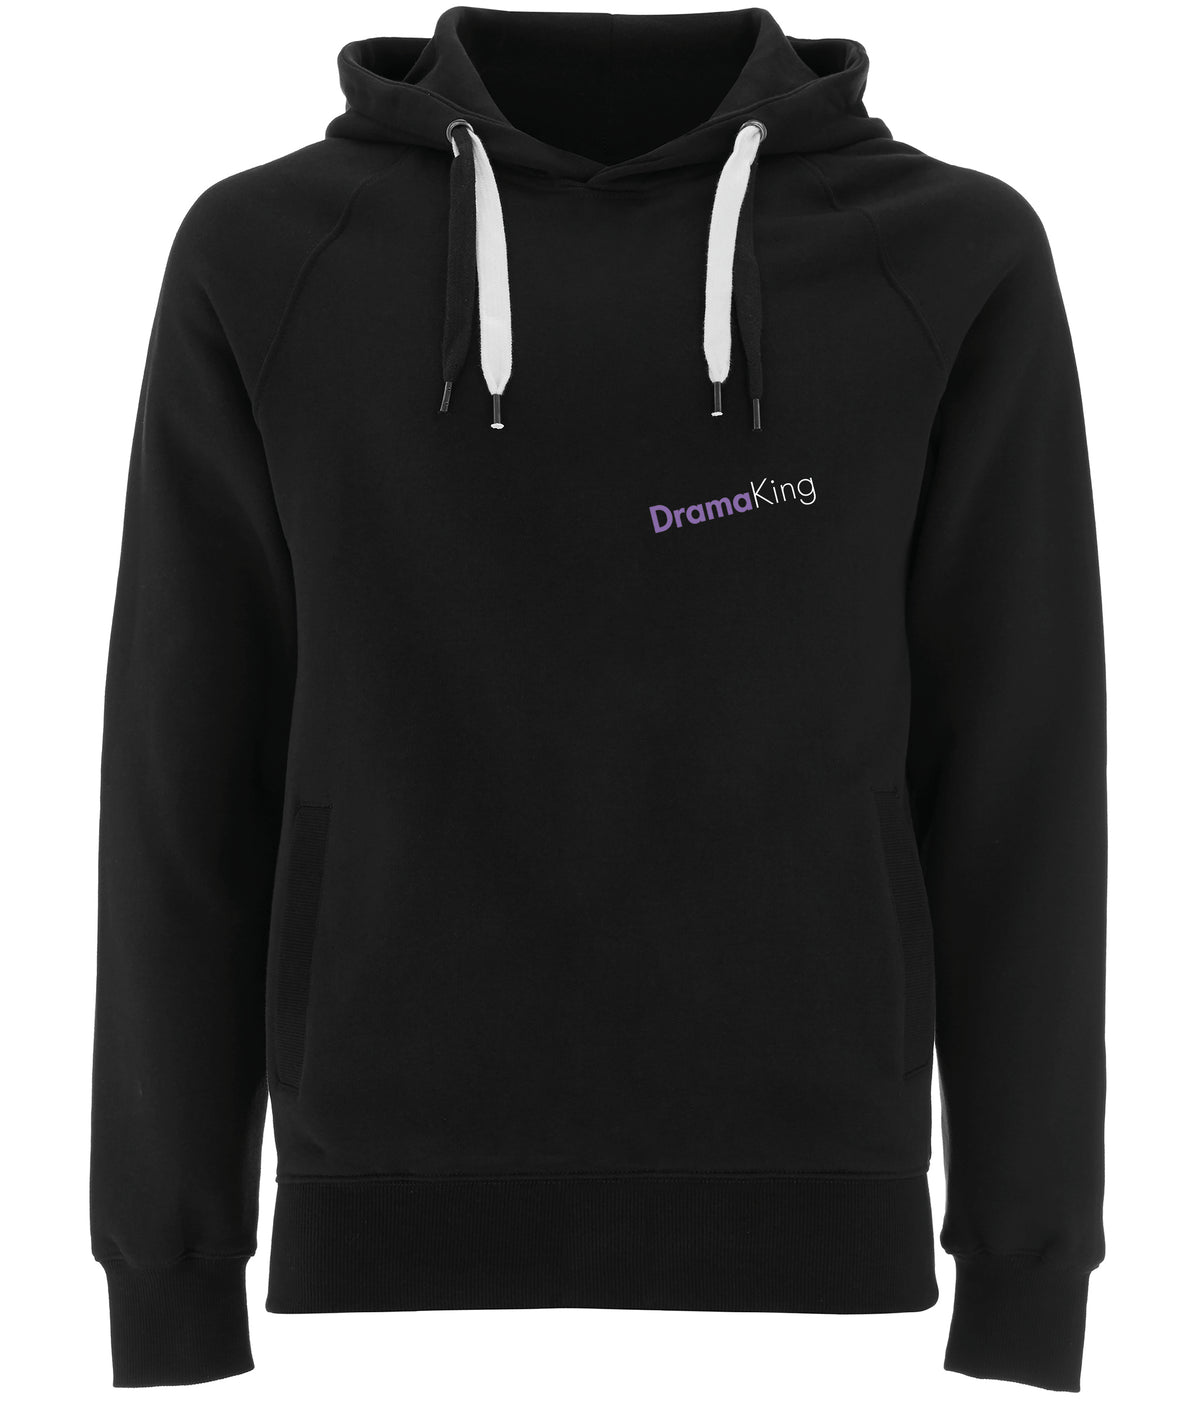 Drama King Organic Combed Cotton Hoodie Black